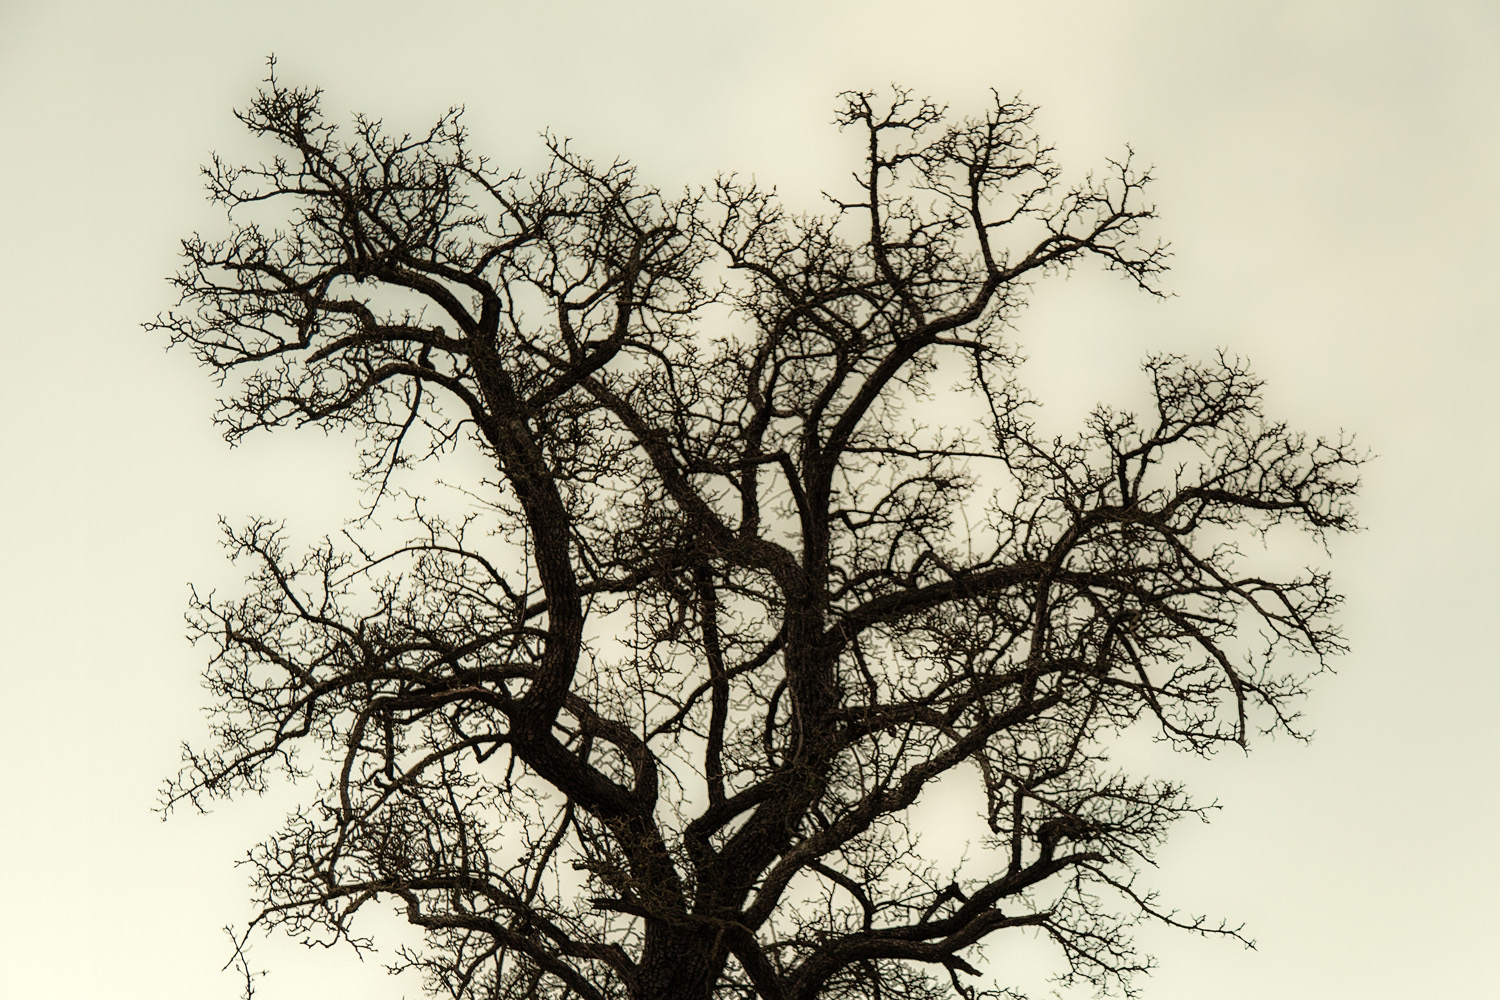 OldTree_NoLeaves©PhotoBenteJaeger.jpg